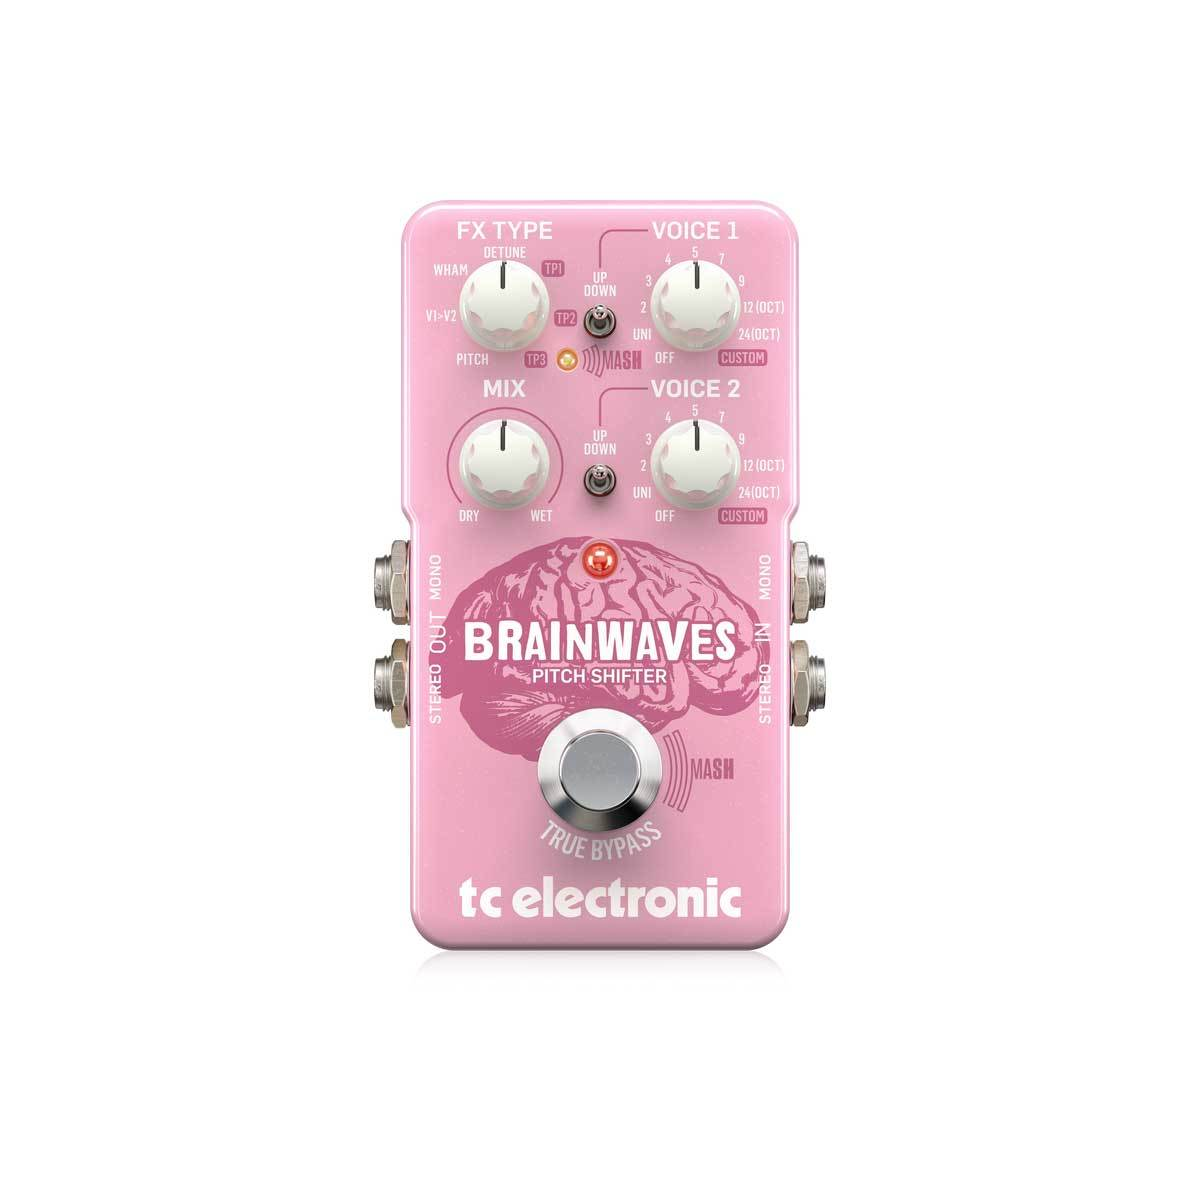 TC Electronic Brainwaves Studio-Grade Pitch Shifter with 4 Octave Dual Voices